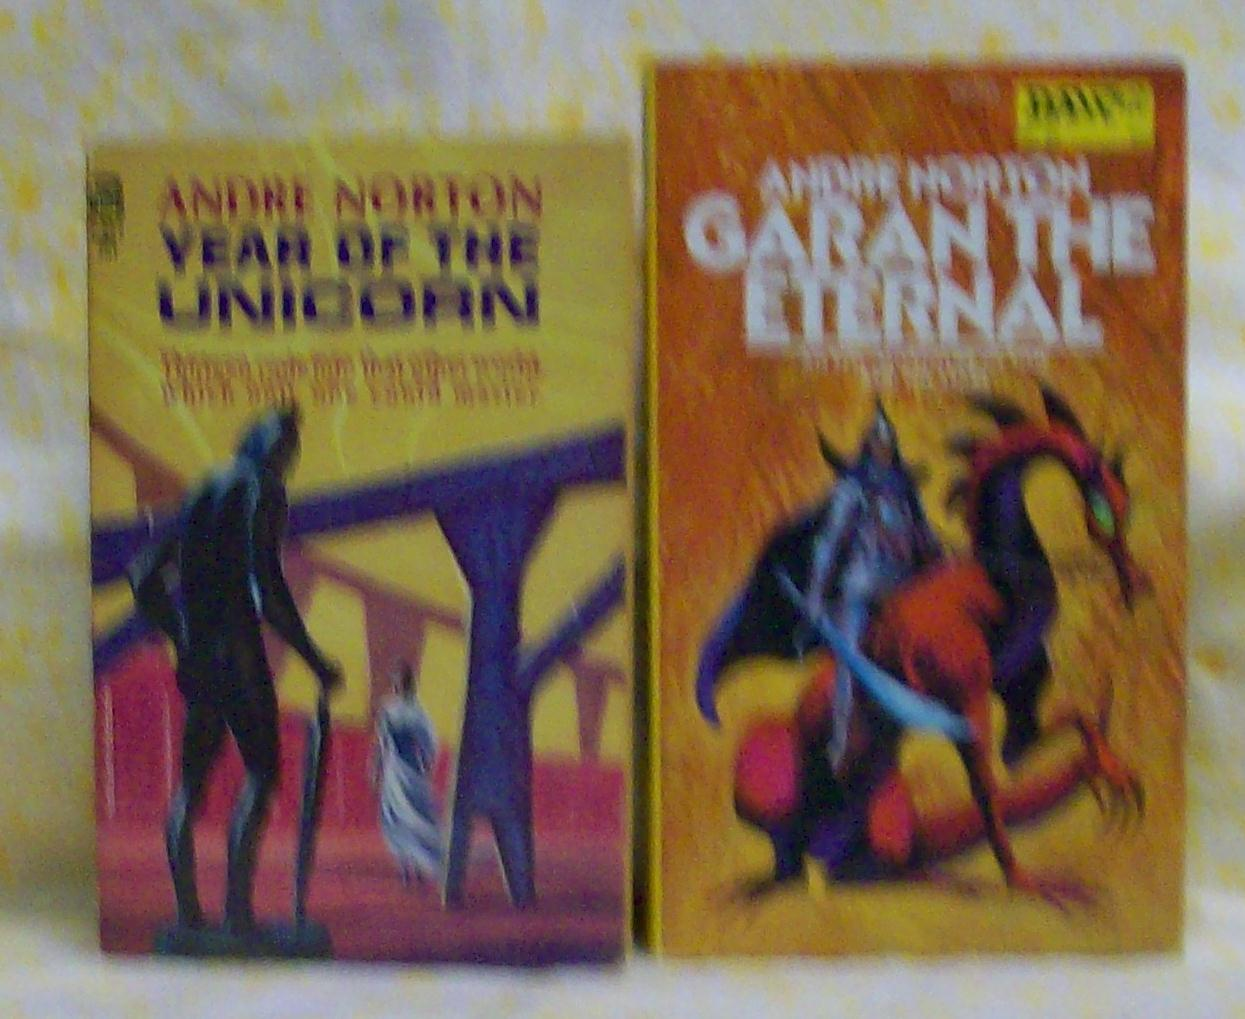 Garan The Eternal and Year of the Unicorn Andre Norton